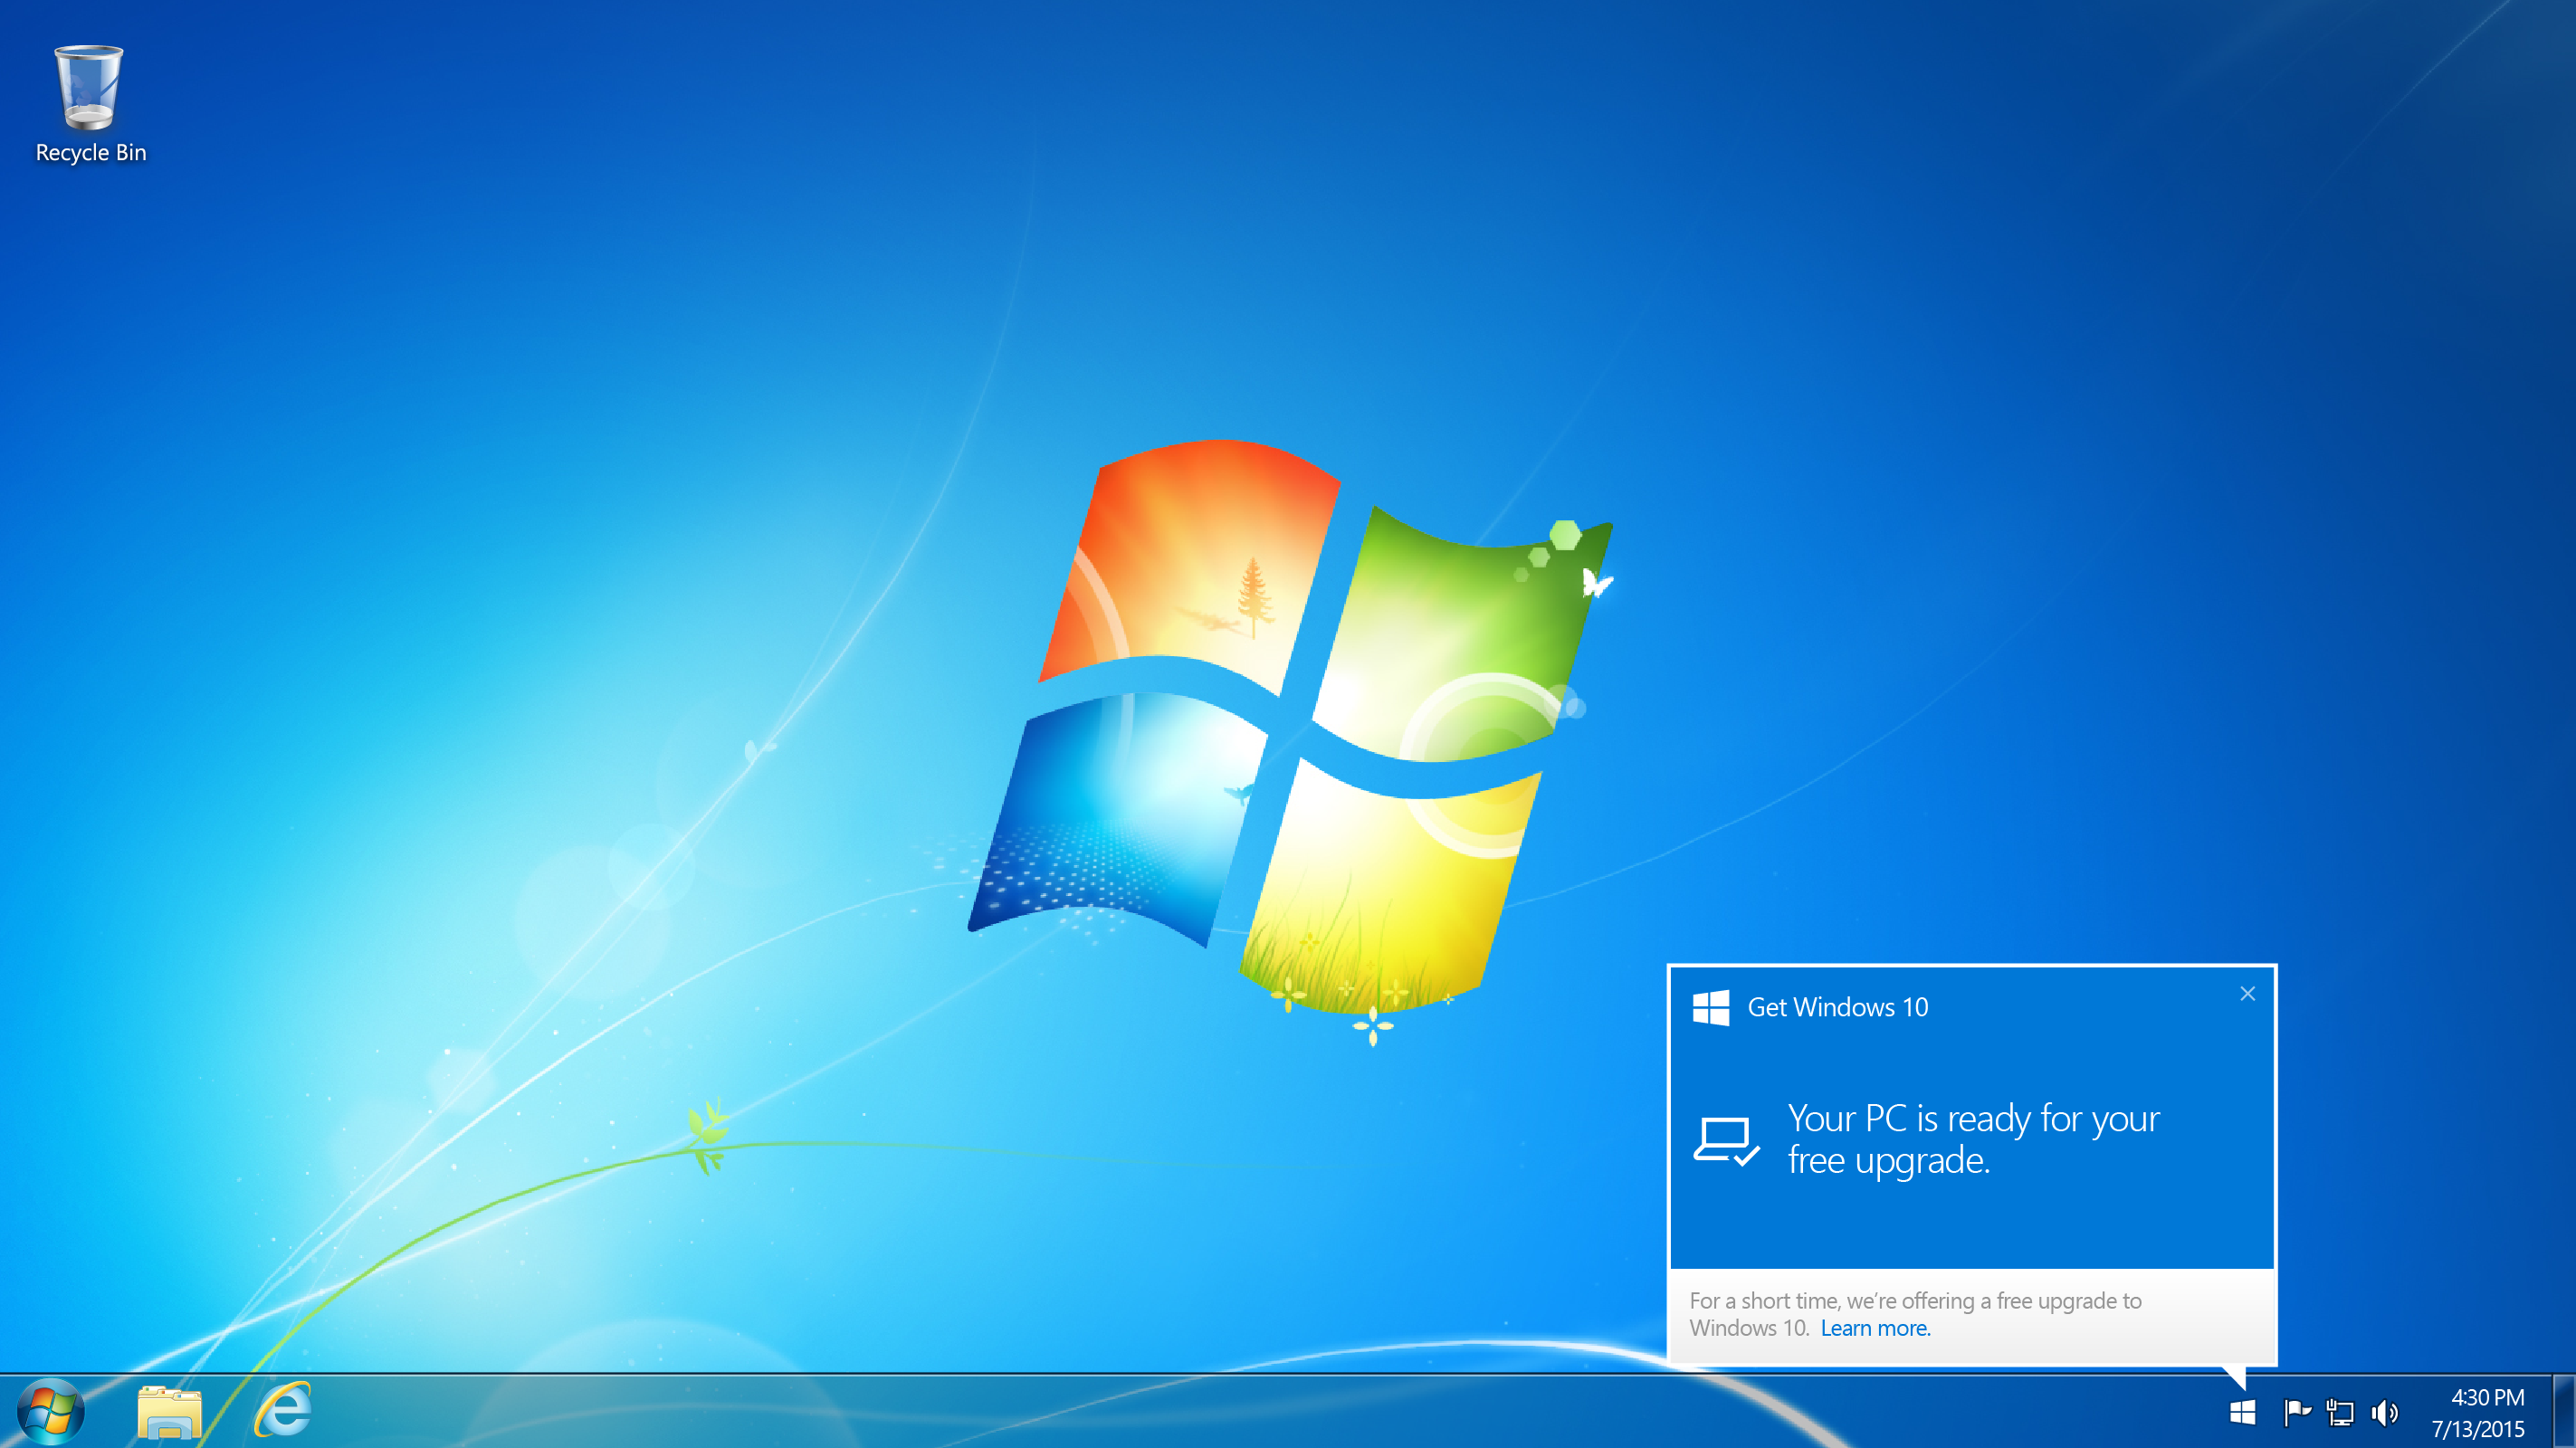 Windows 10 update for Windows 7